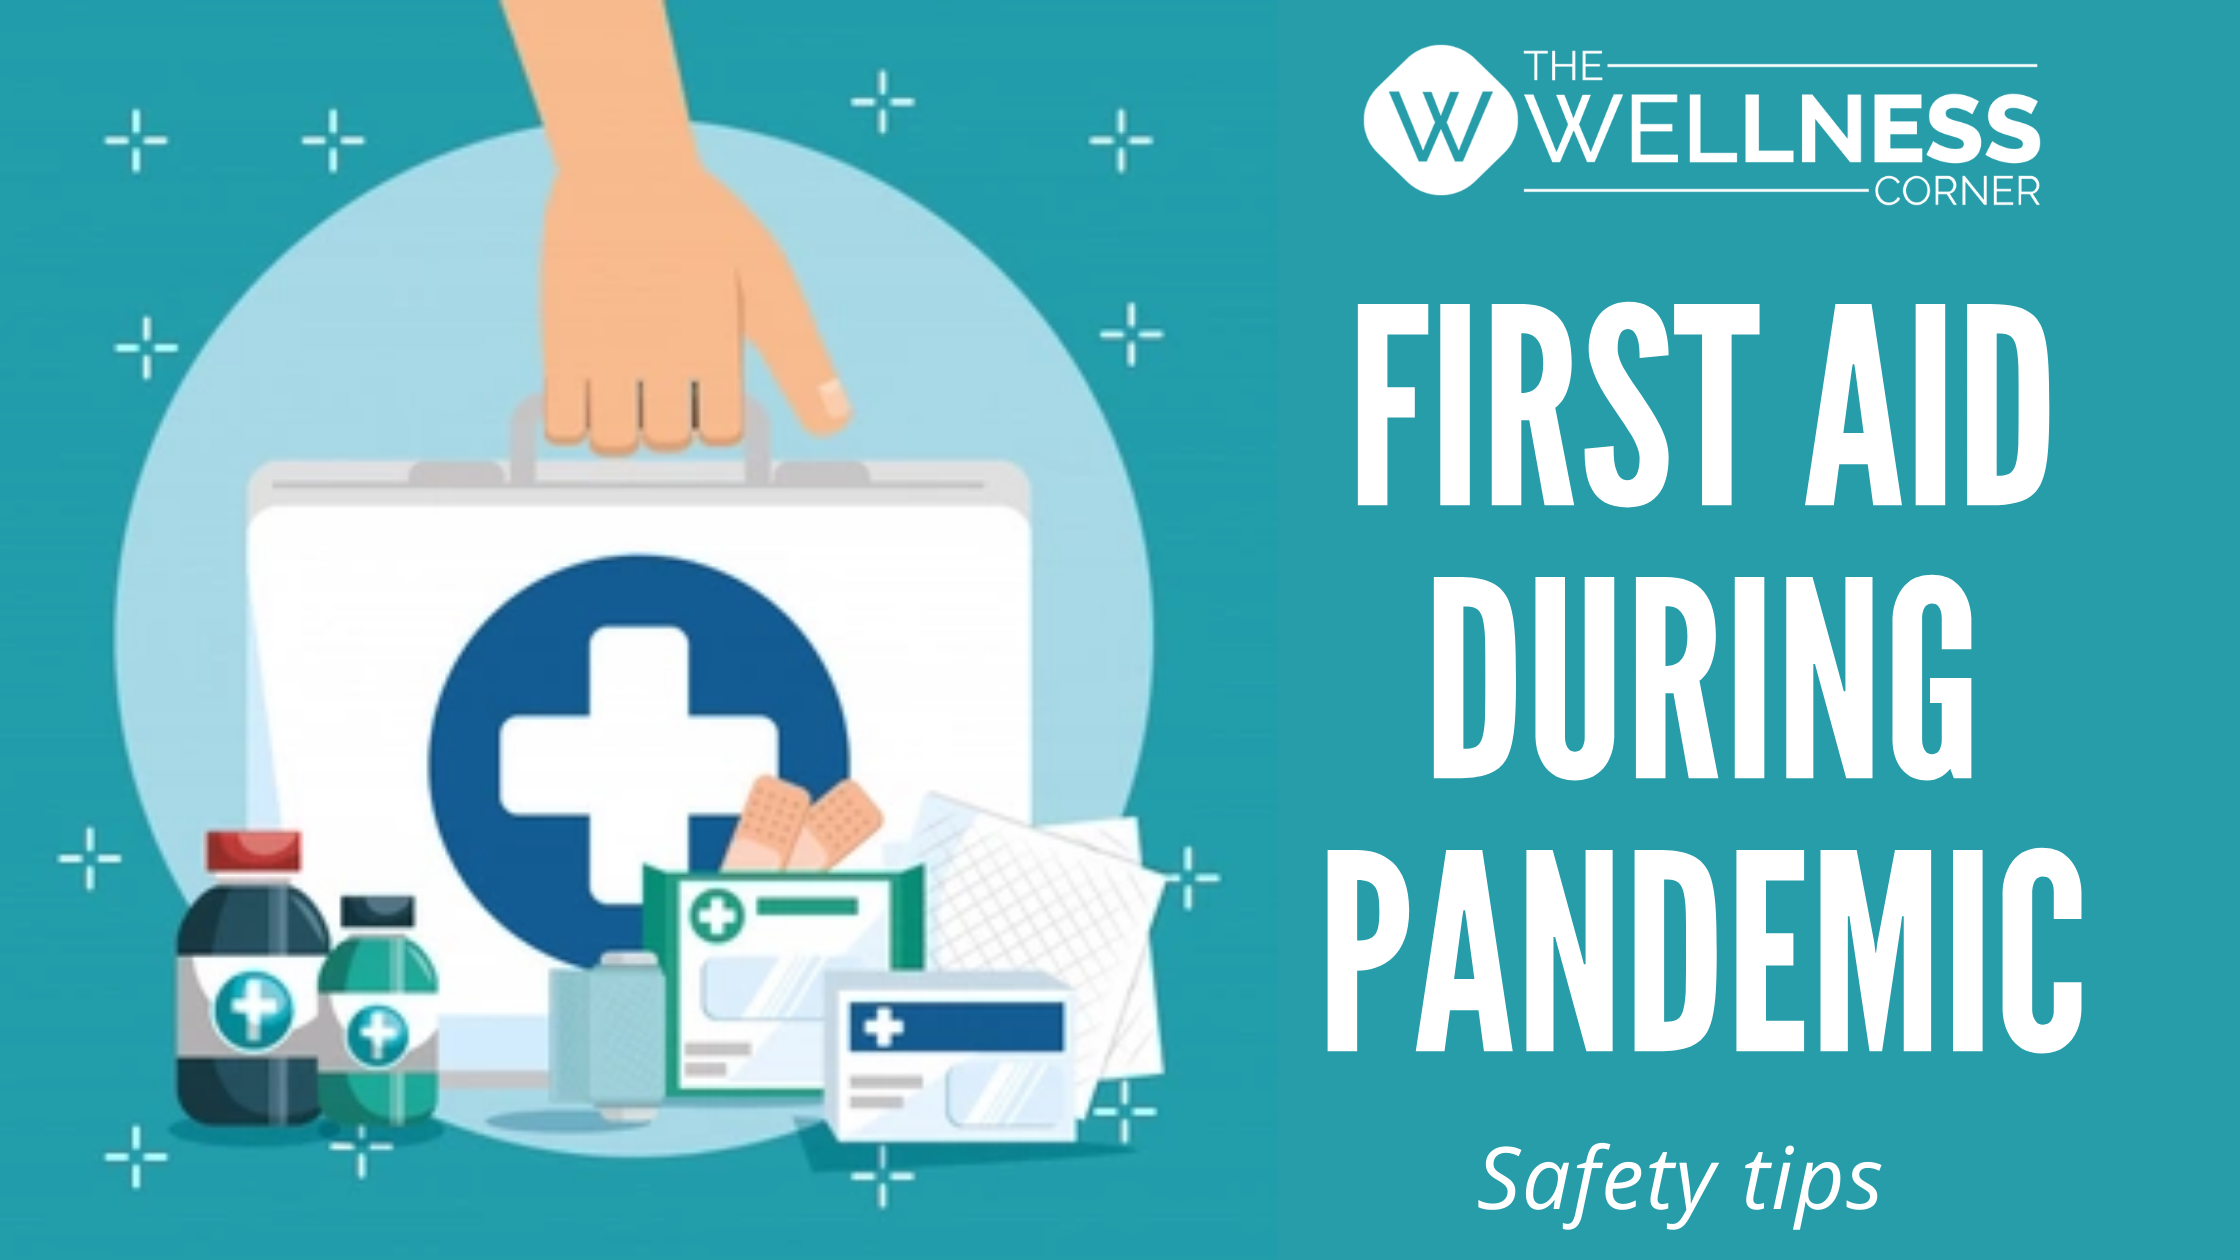 First Aid during Covid-19 Pandemic - What to Do & Safety Tips